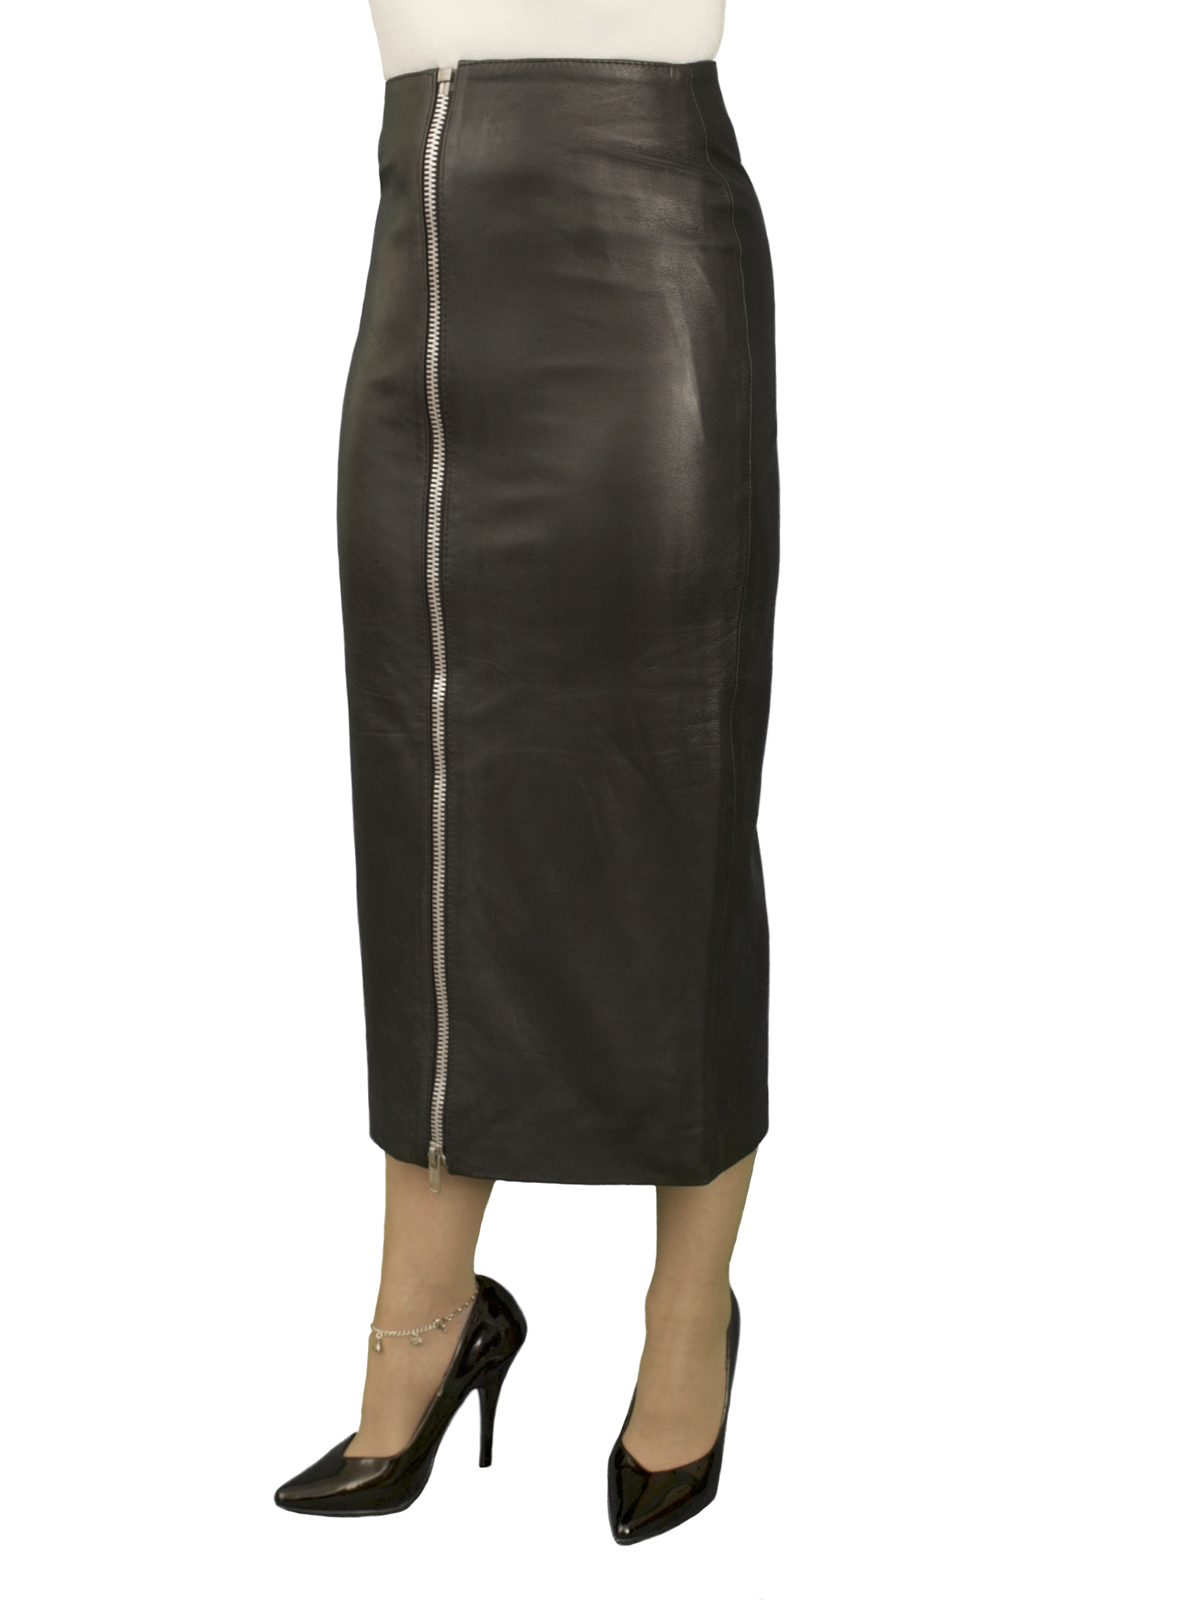 Black Luxury Leather Midi Skirt, full front zip (length 31in)